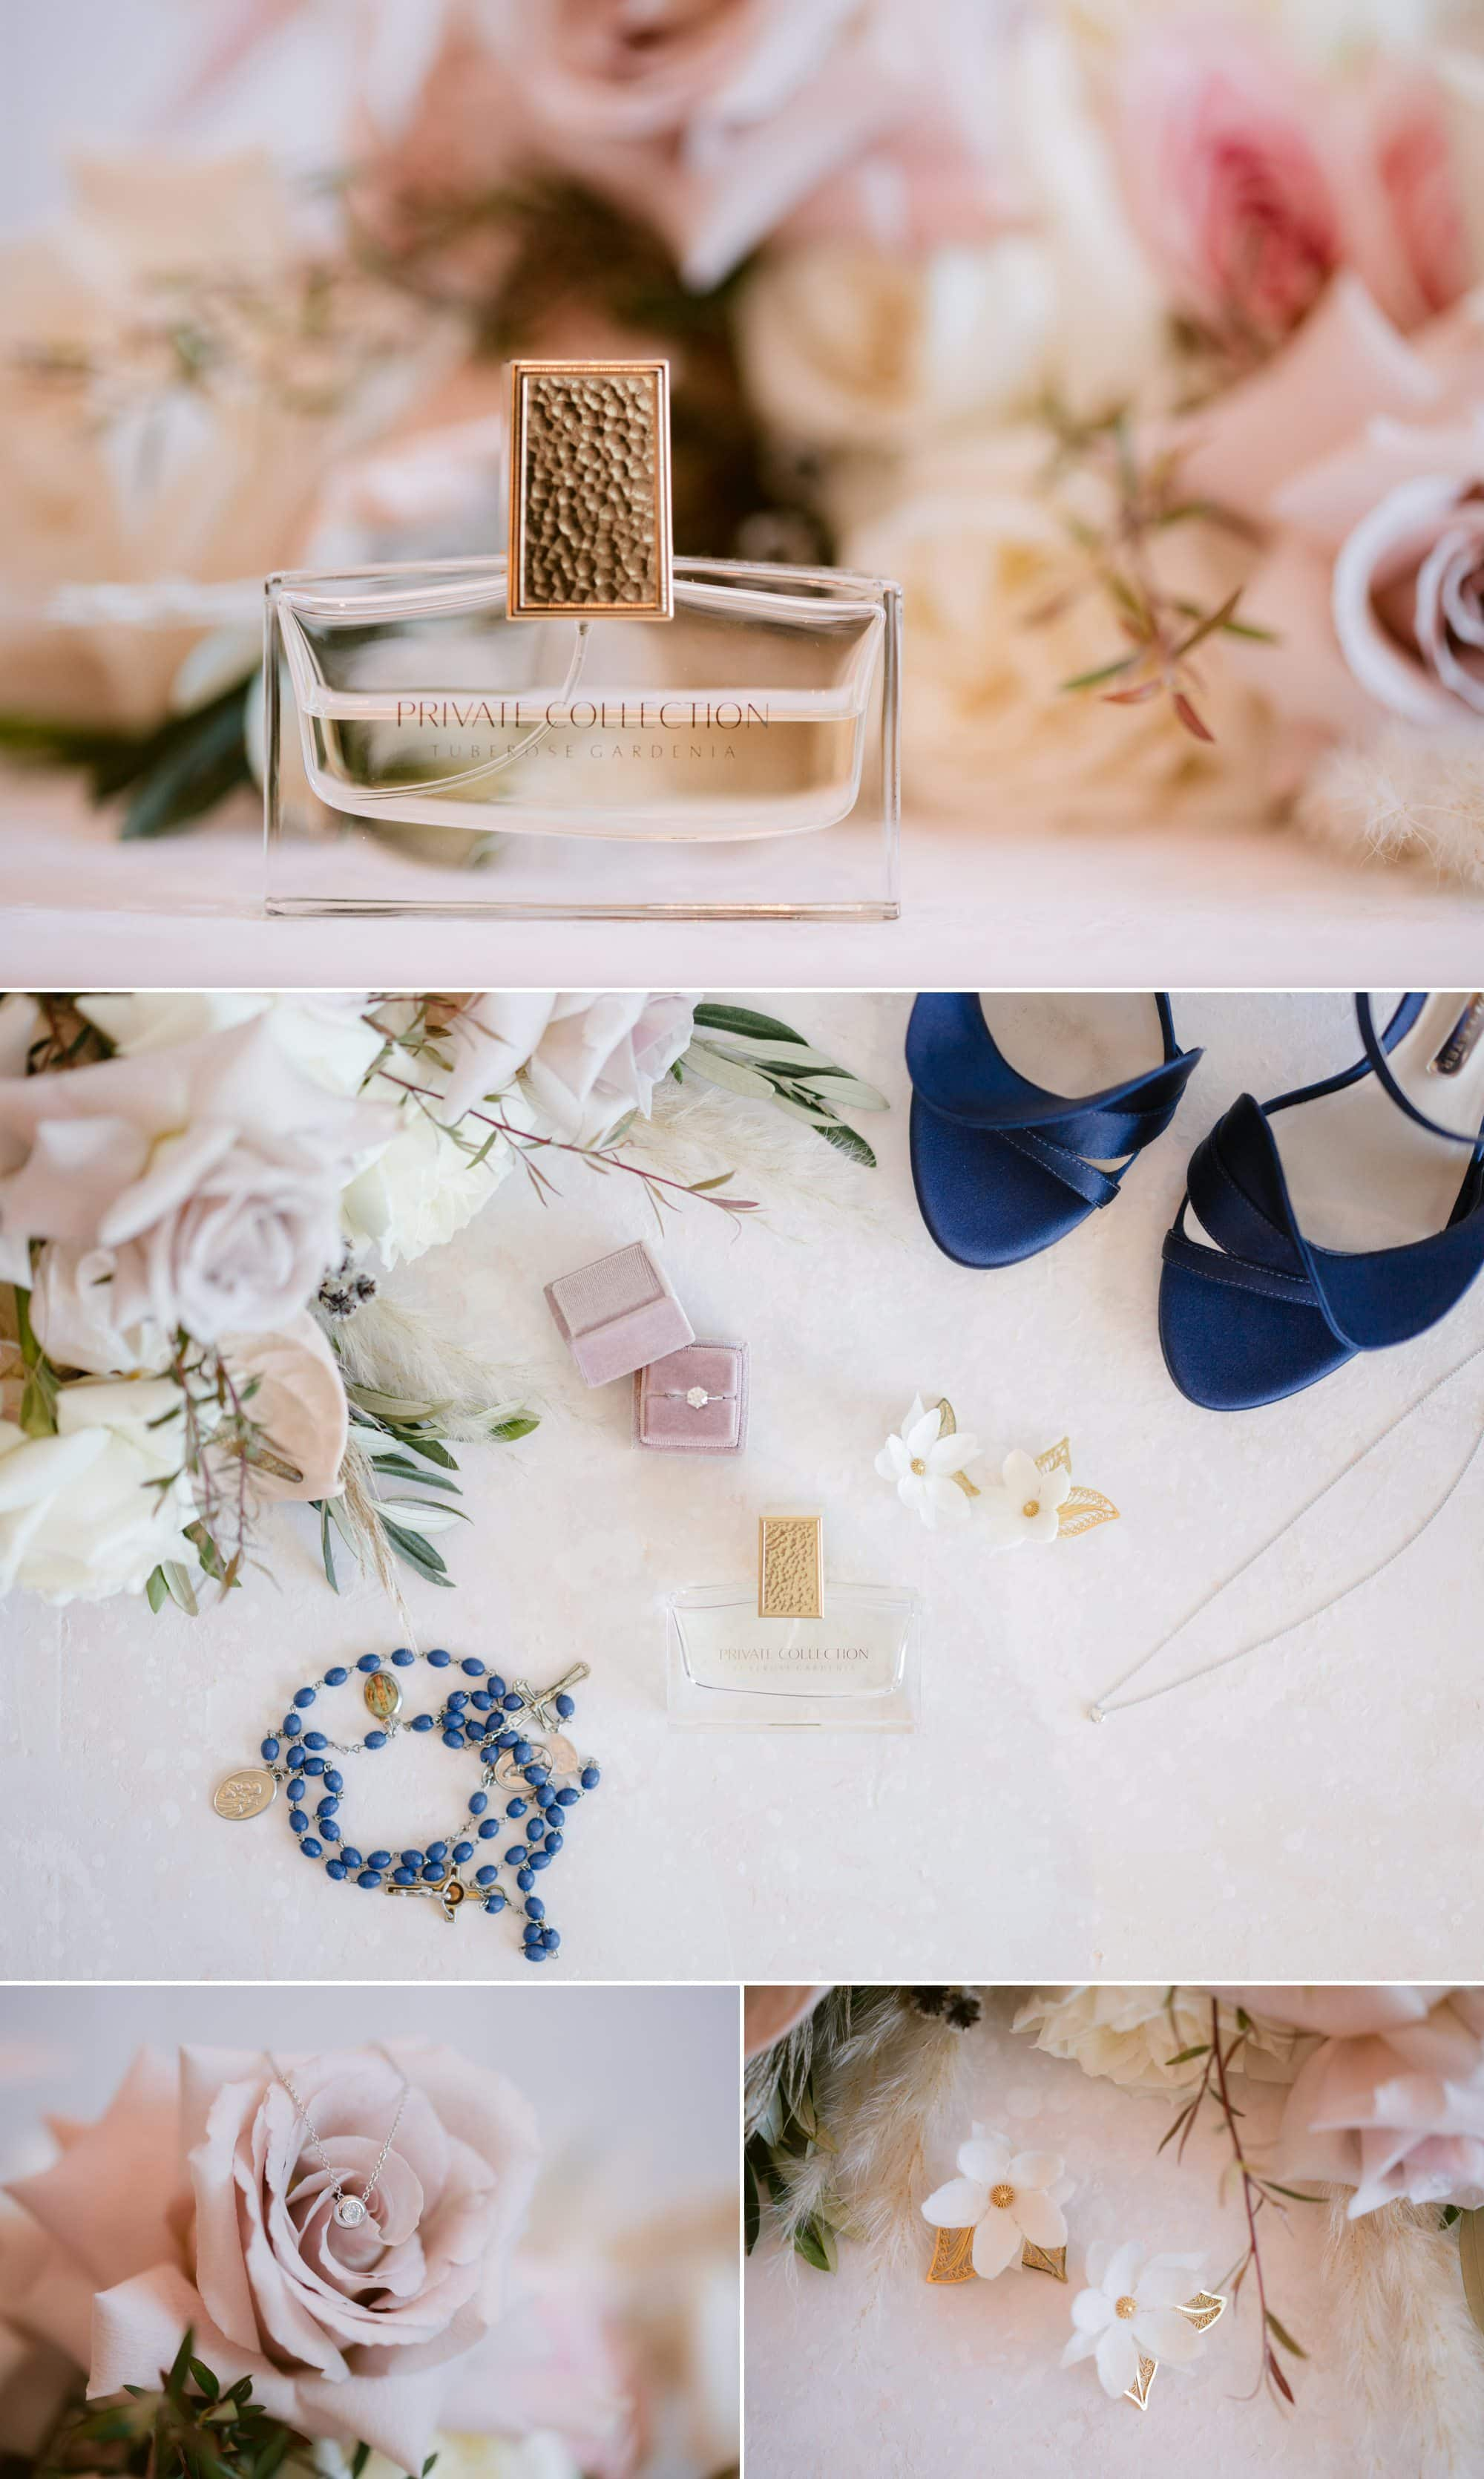 Victoria Park wedding photographer prep details shoes jewellery bouquet